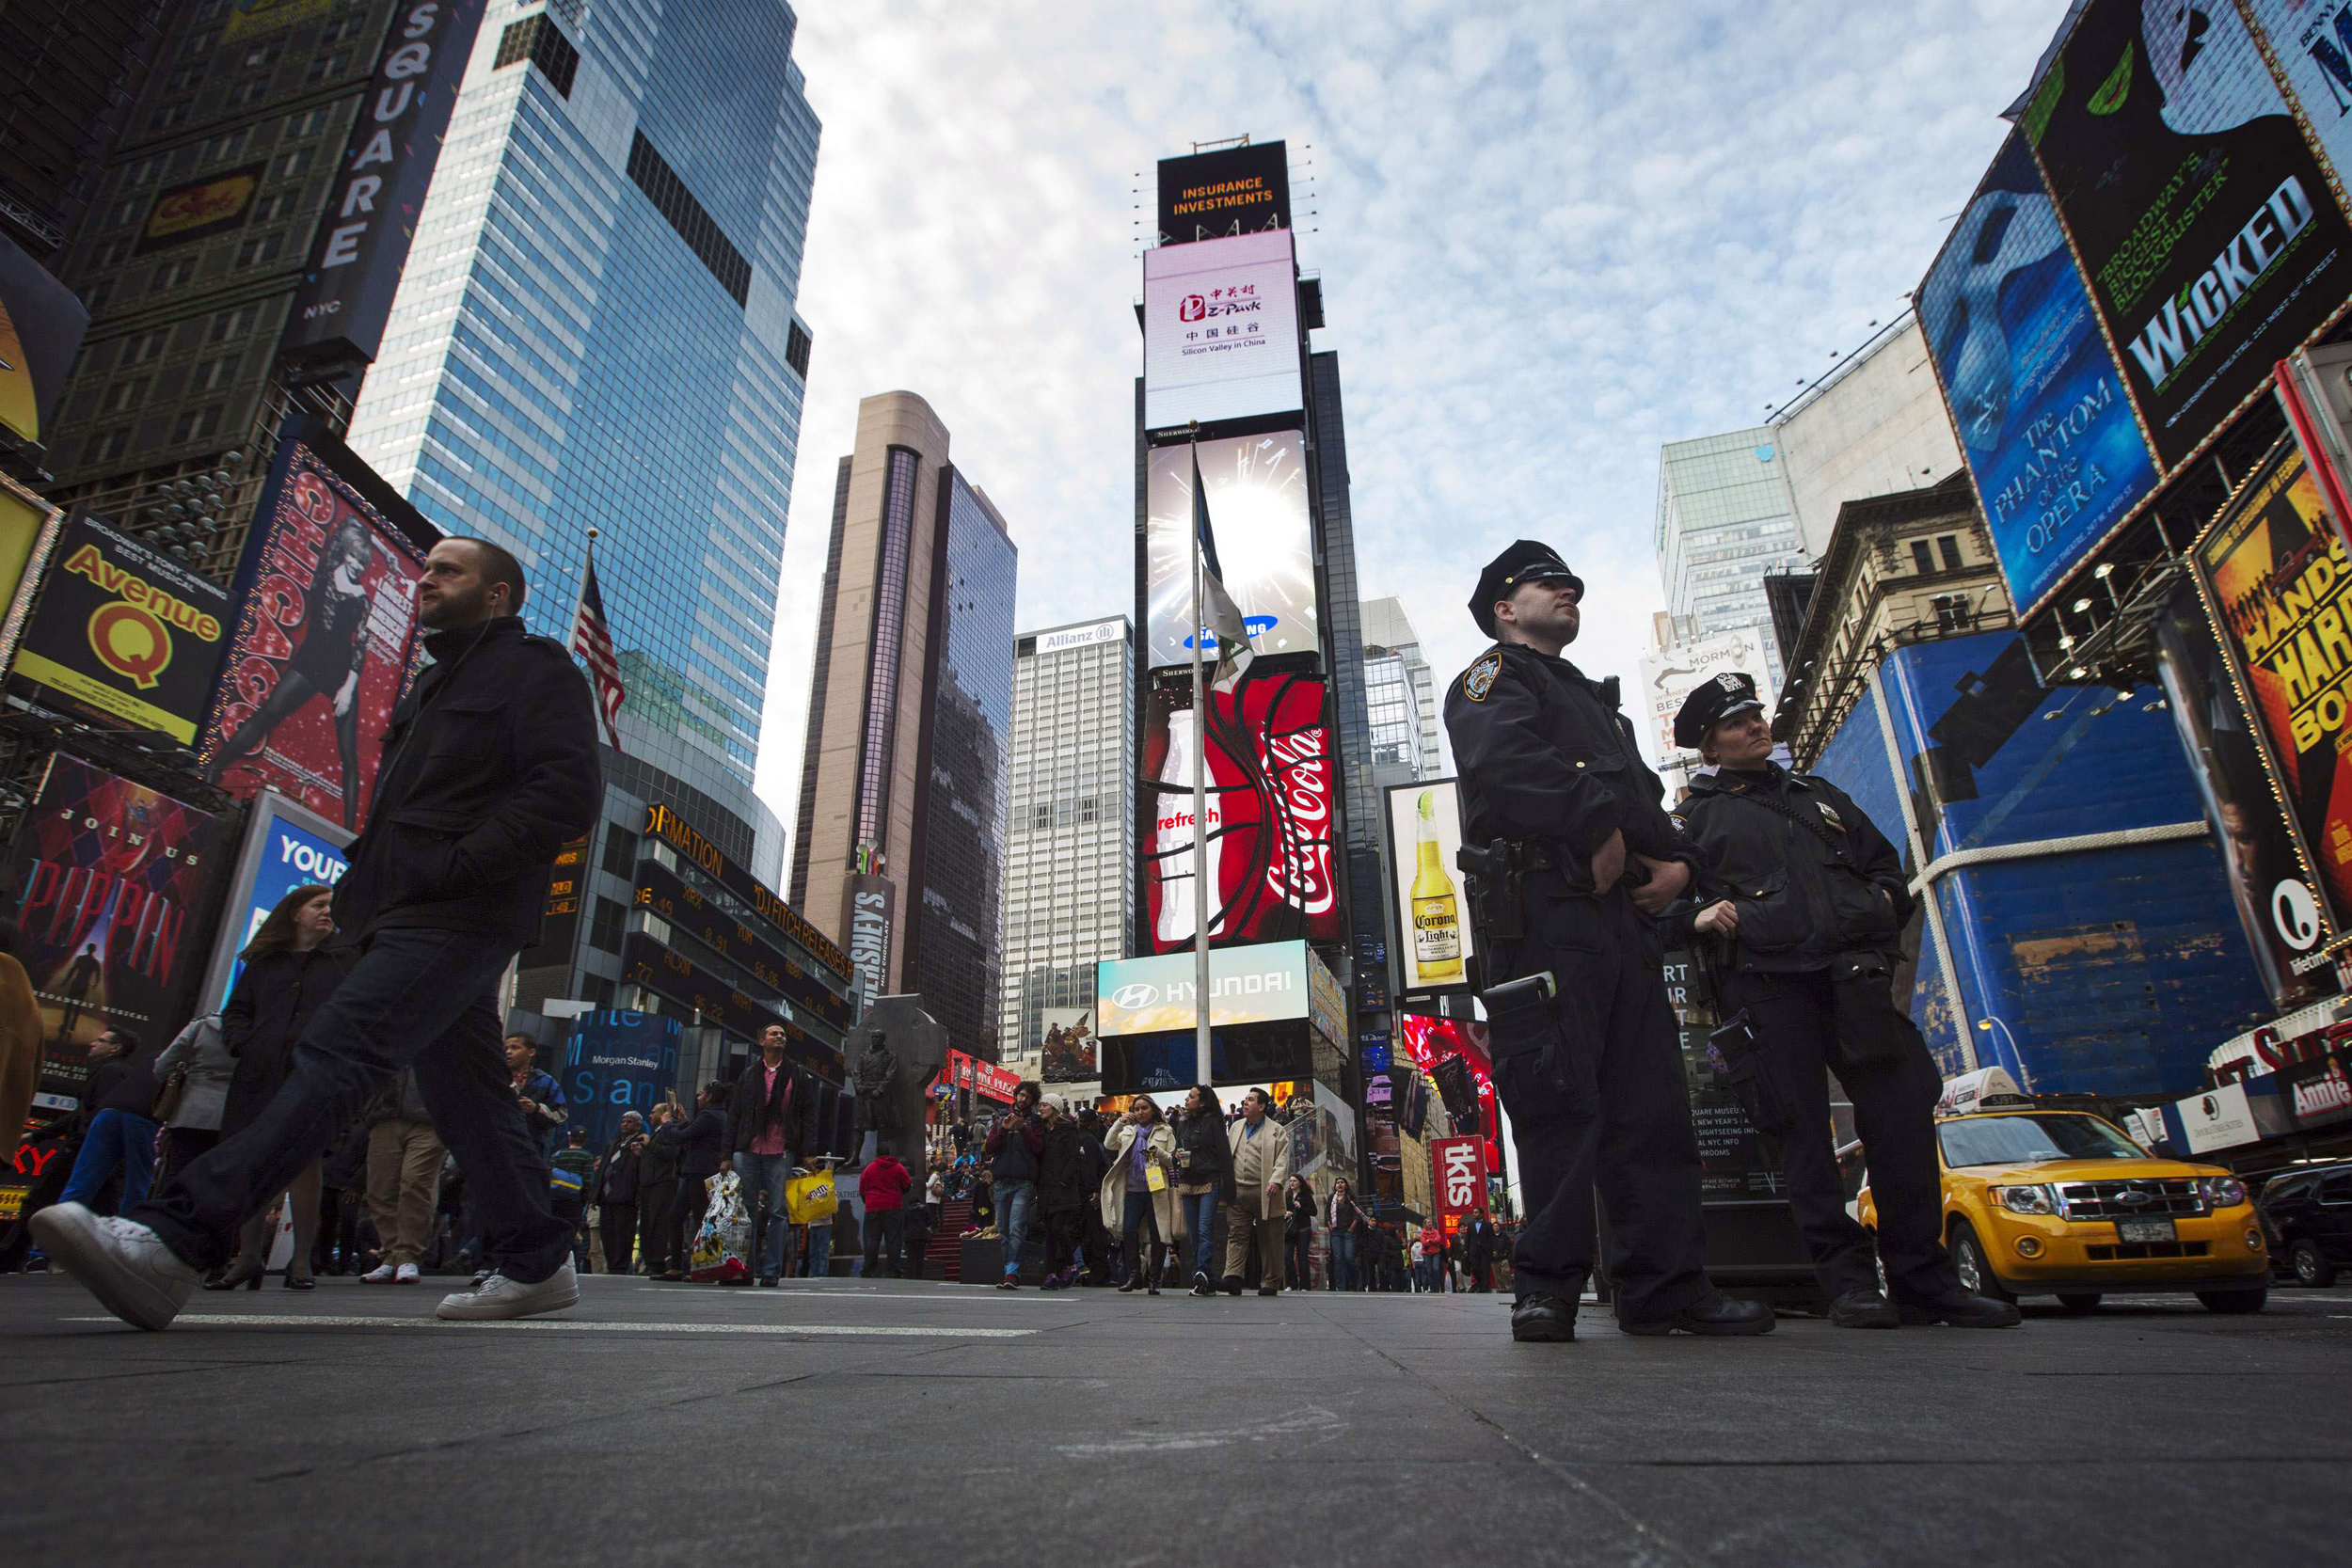 Image: NNew York Police Department officers stand in the Times Square district of New York during an increase in security